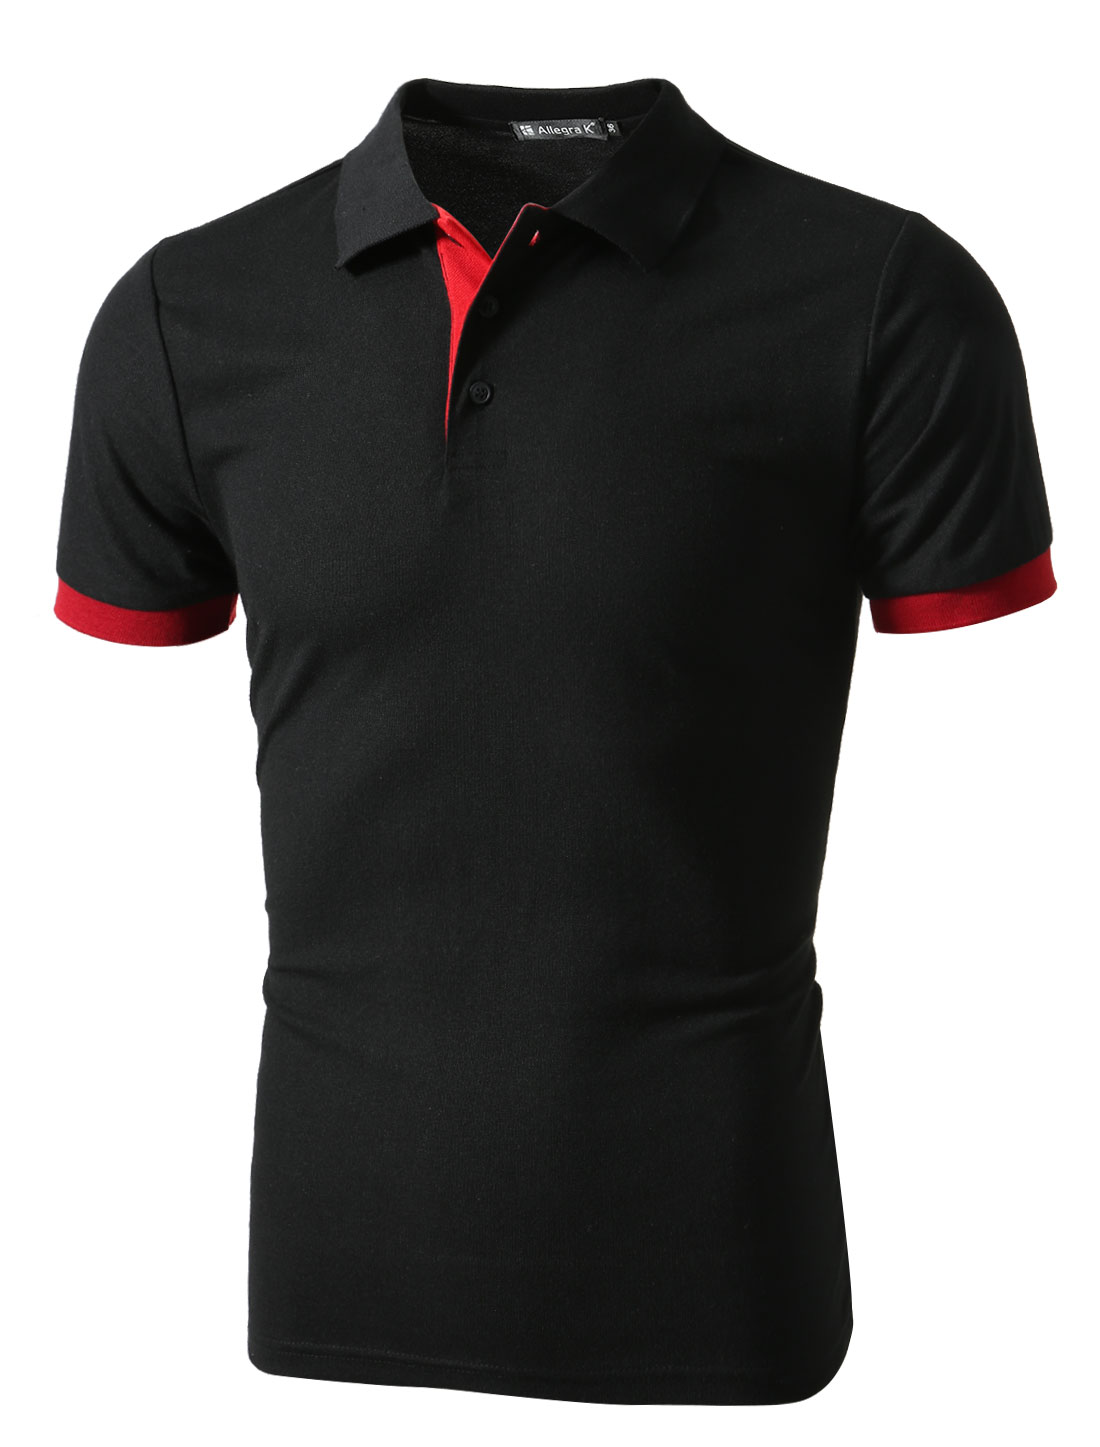 Men Short Sleeves Point Collar Slim Fit Casual Polo Shirts Black M